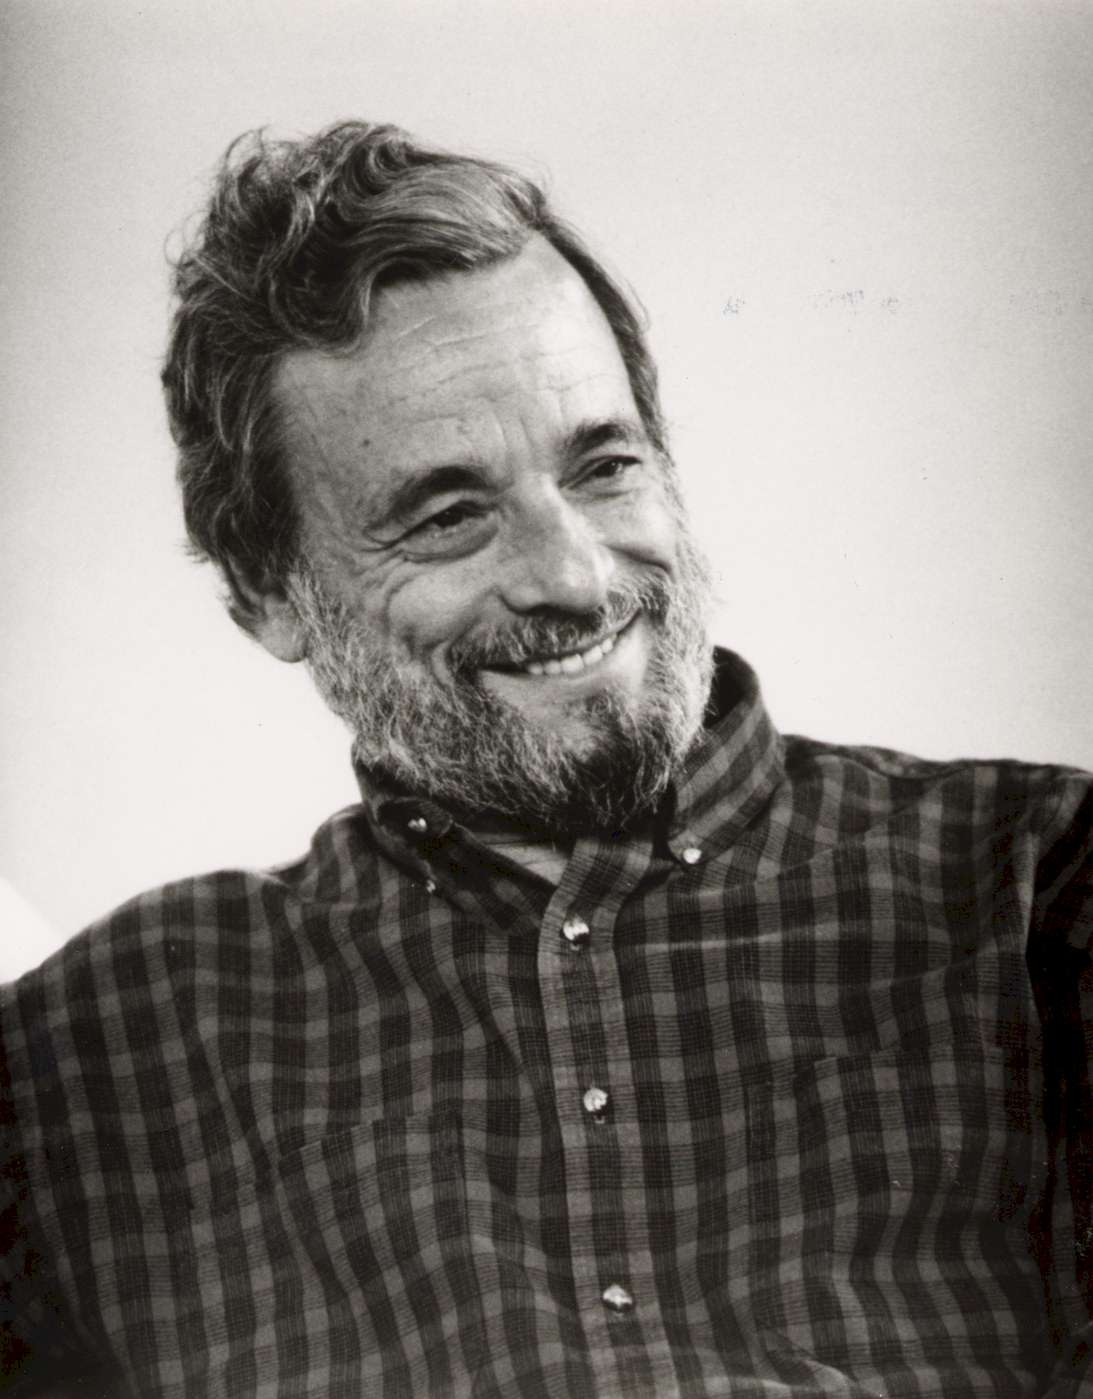 Stephen Sondheim A Funny Thing Happened On The Way To The Forum